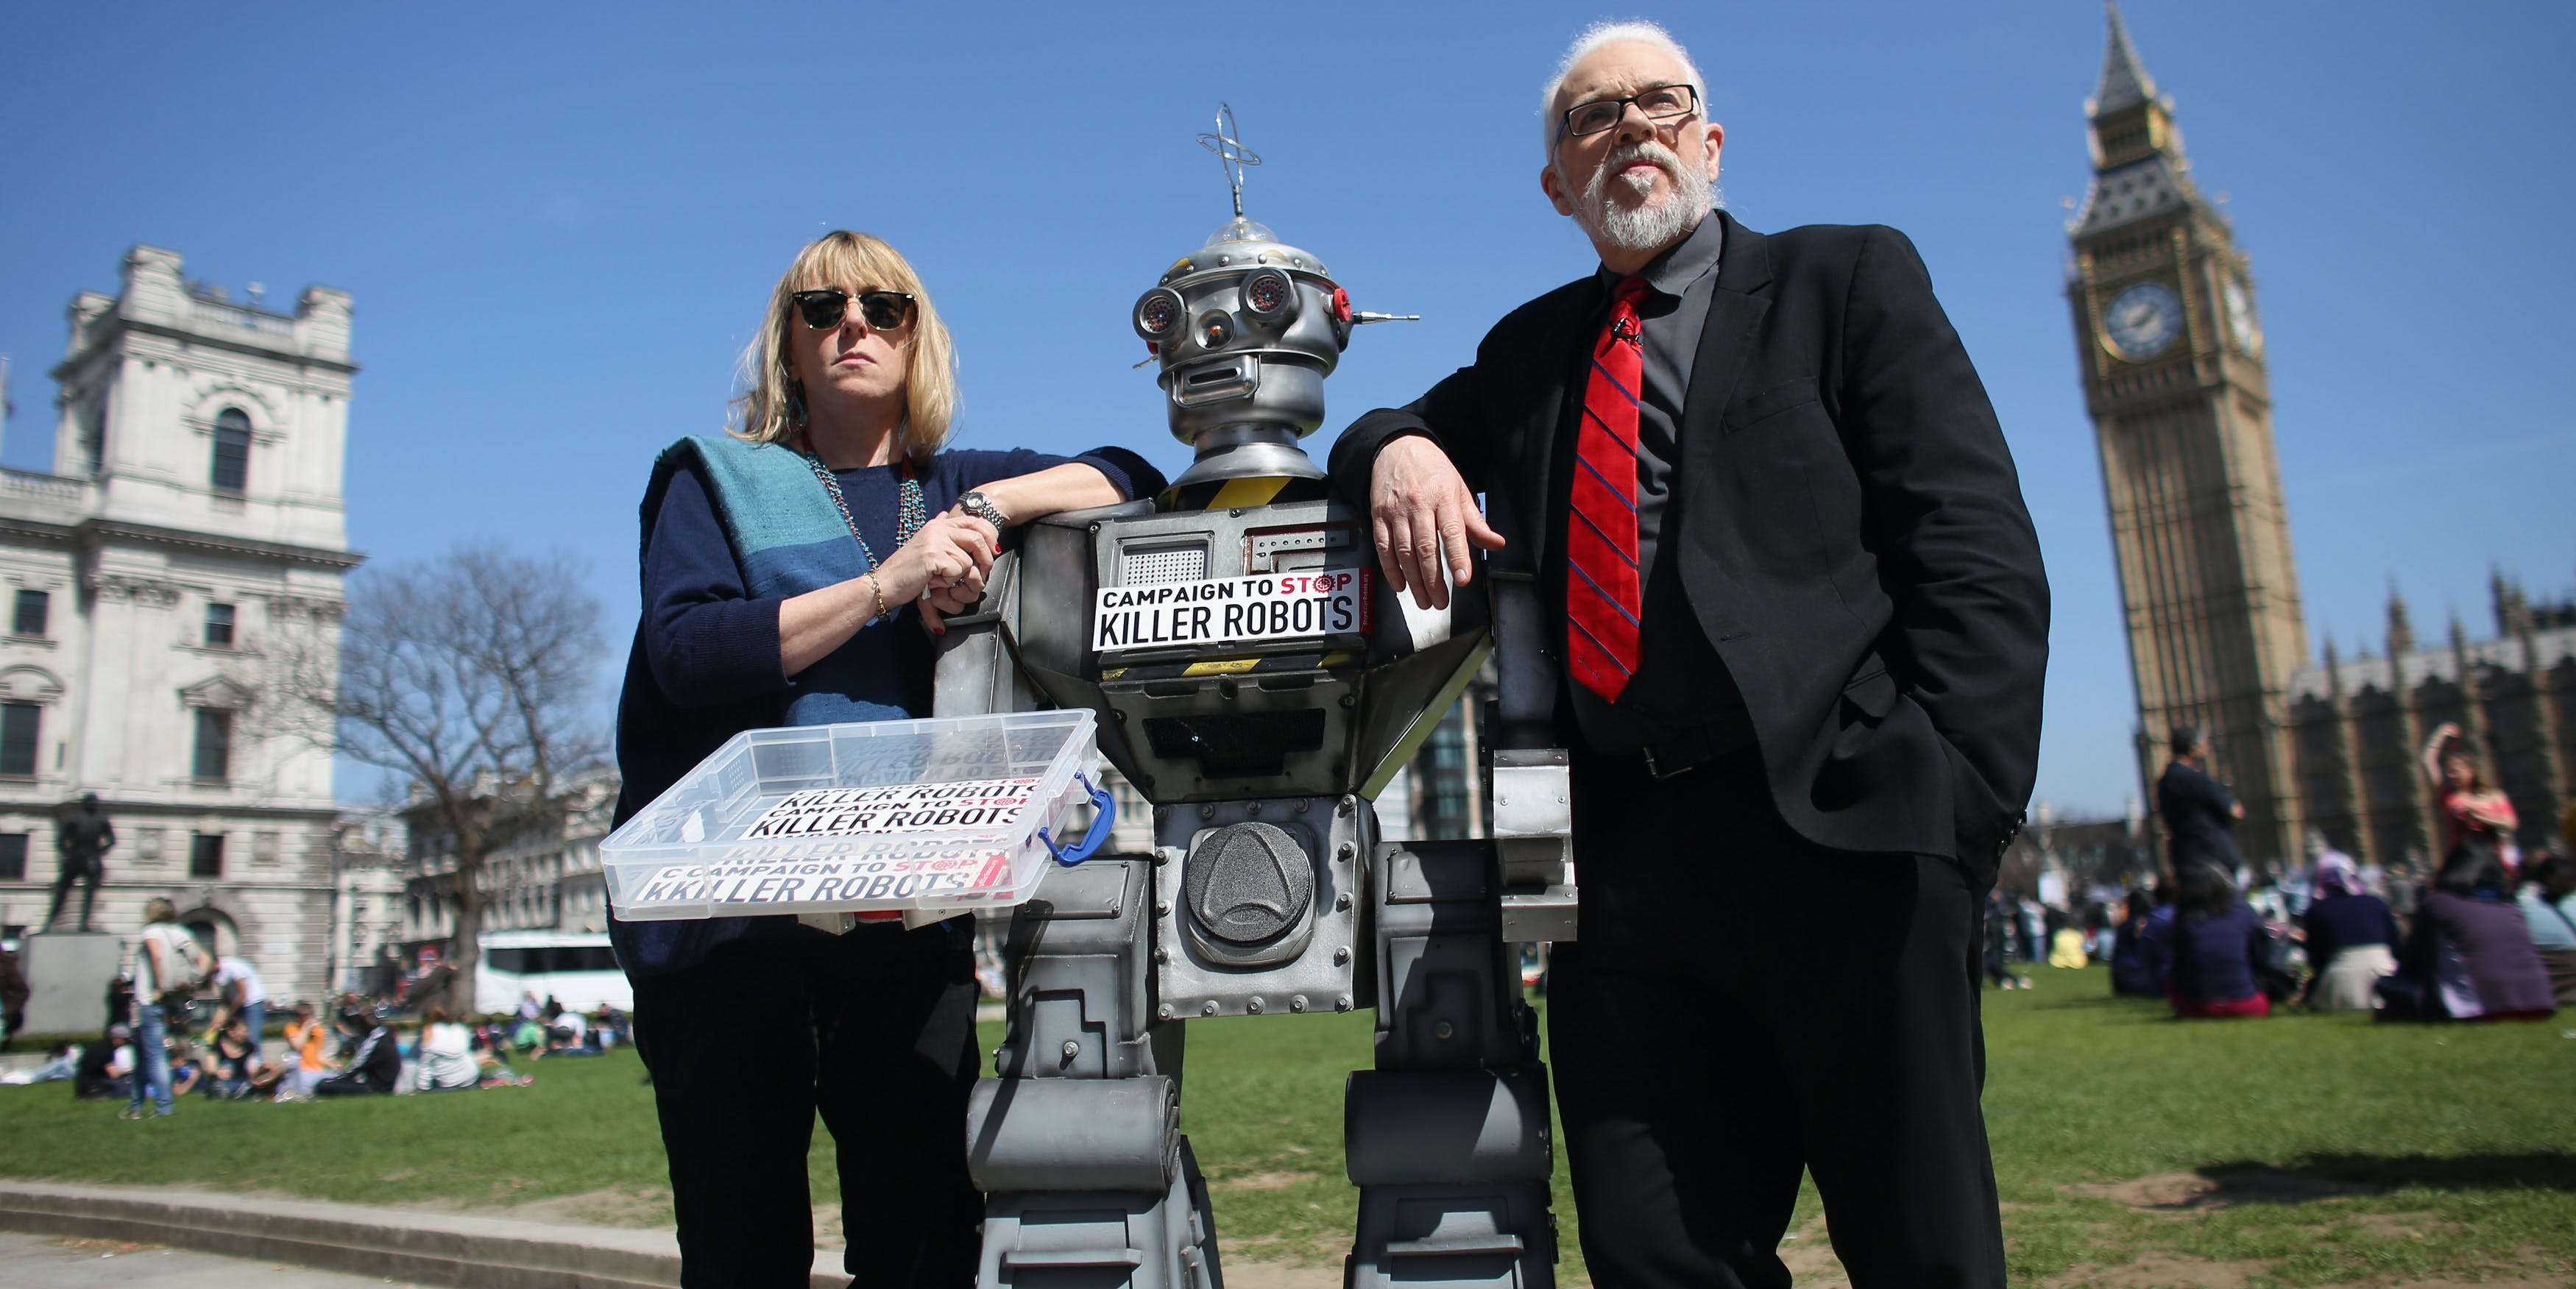 Jody Williams, a Nobel Peace Laureate, and Professor Noel Sharkey, the chair of the International Committee for Robot Arms Control, pose with a robot at a protest.